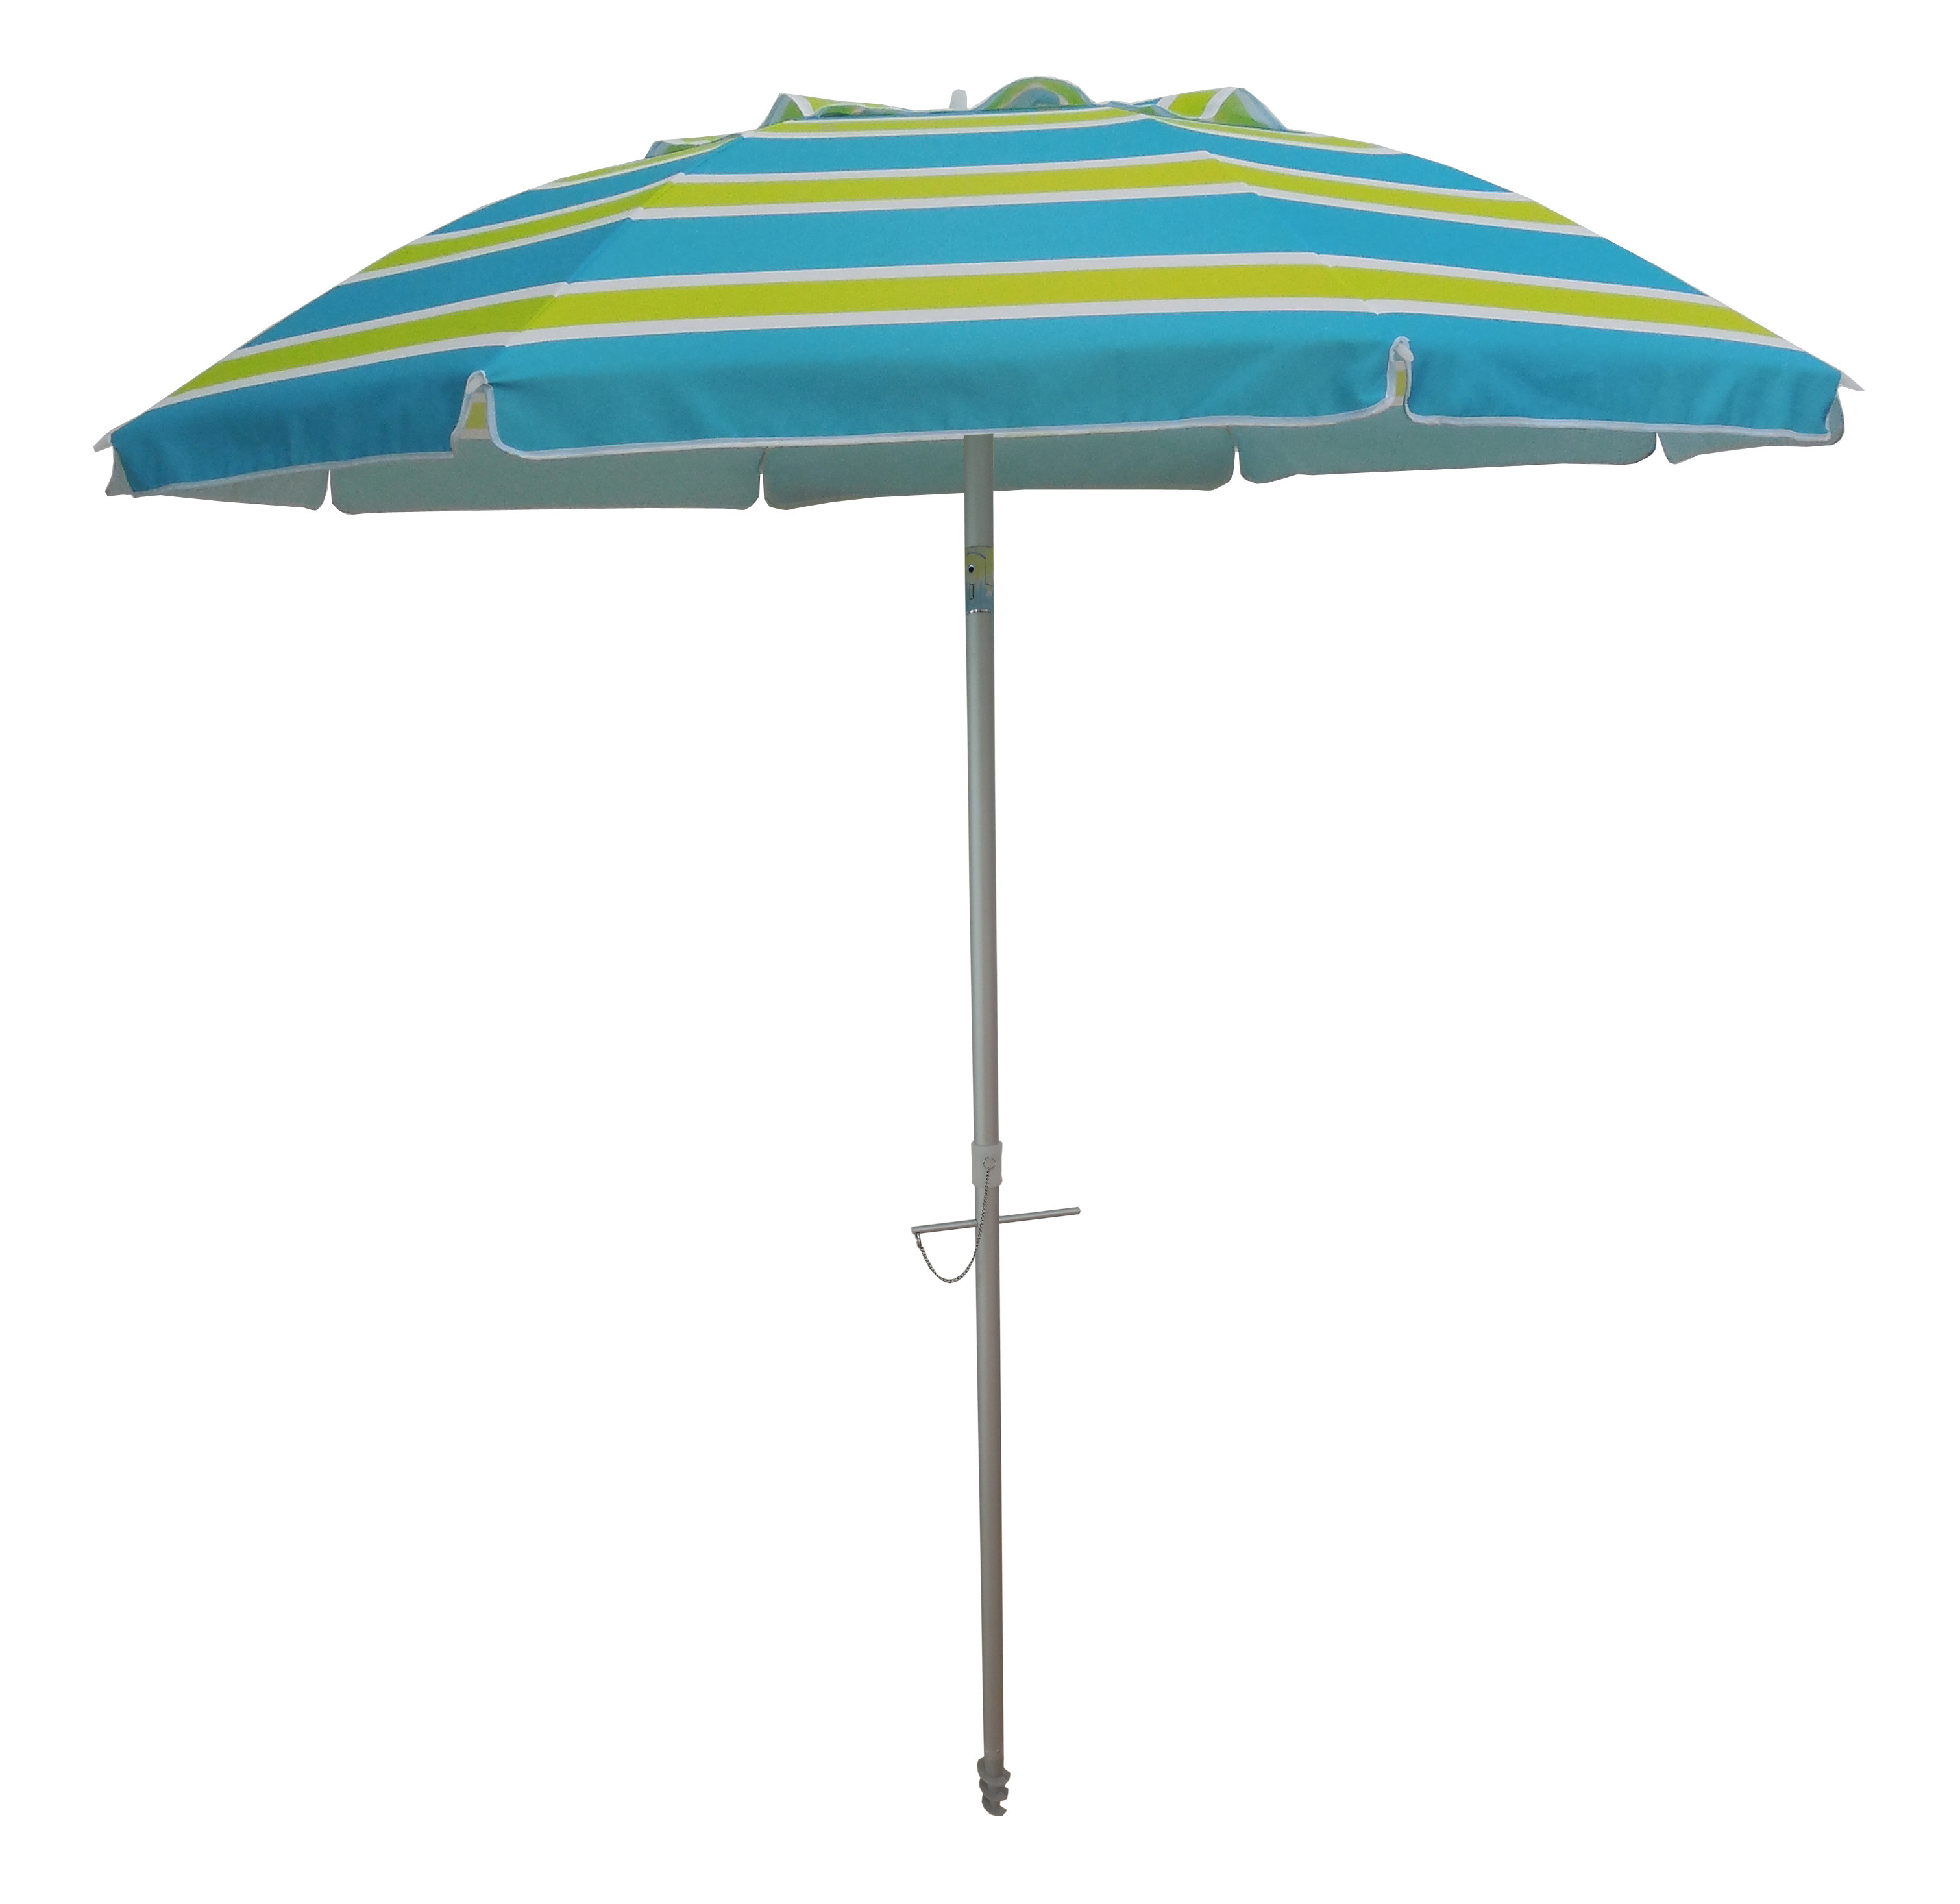 Fashionable Hookton Crank Market Umbrellas Pertaining To 7' Beach Umbrella (View 4 of 20)